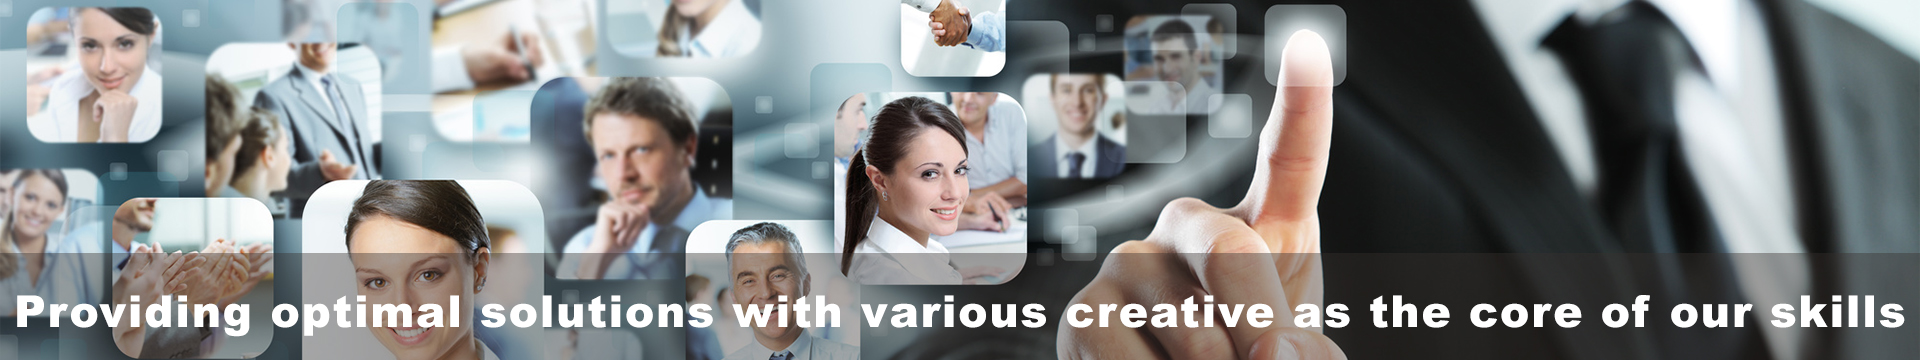 Providing optimal solutions with various creative at the core of our skills.